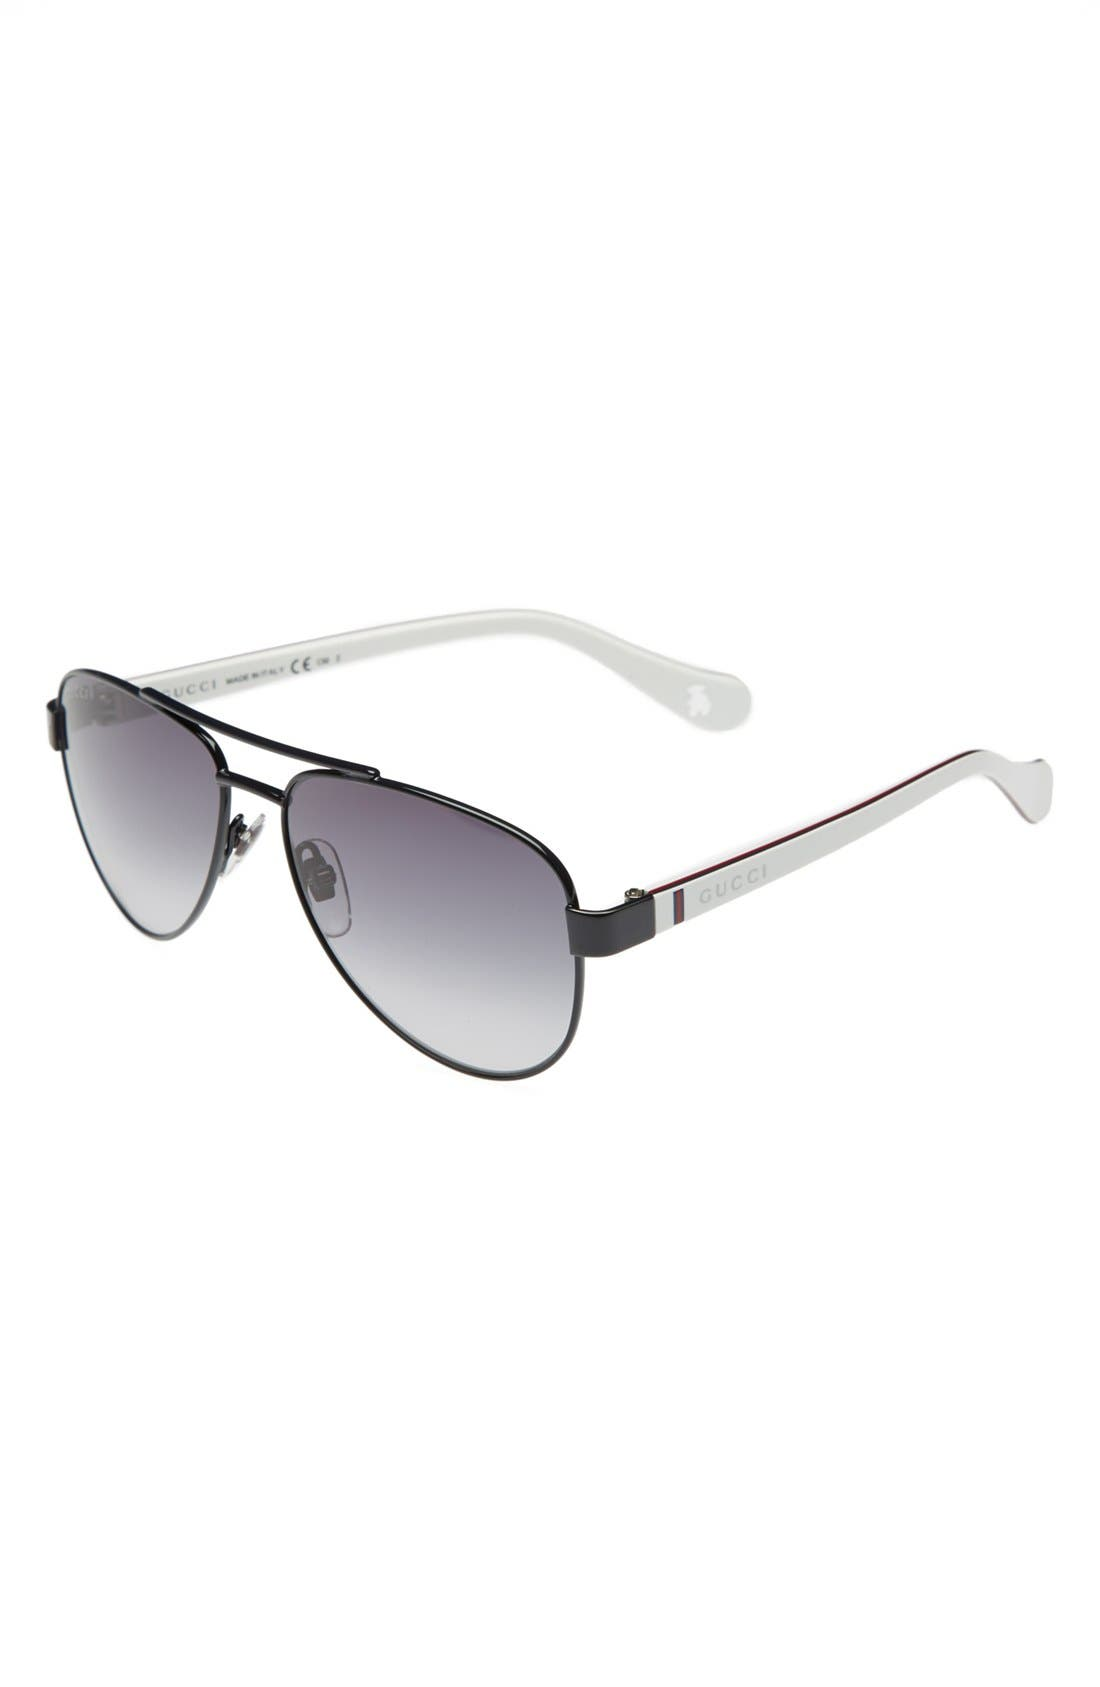 Alternate Image 1 Selected - Gucci 51mm Aviator Sunglasses (Kids)